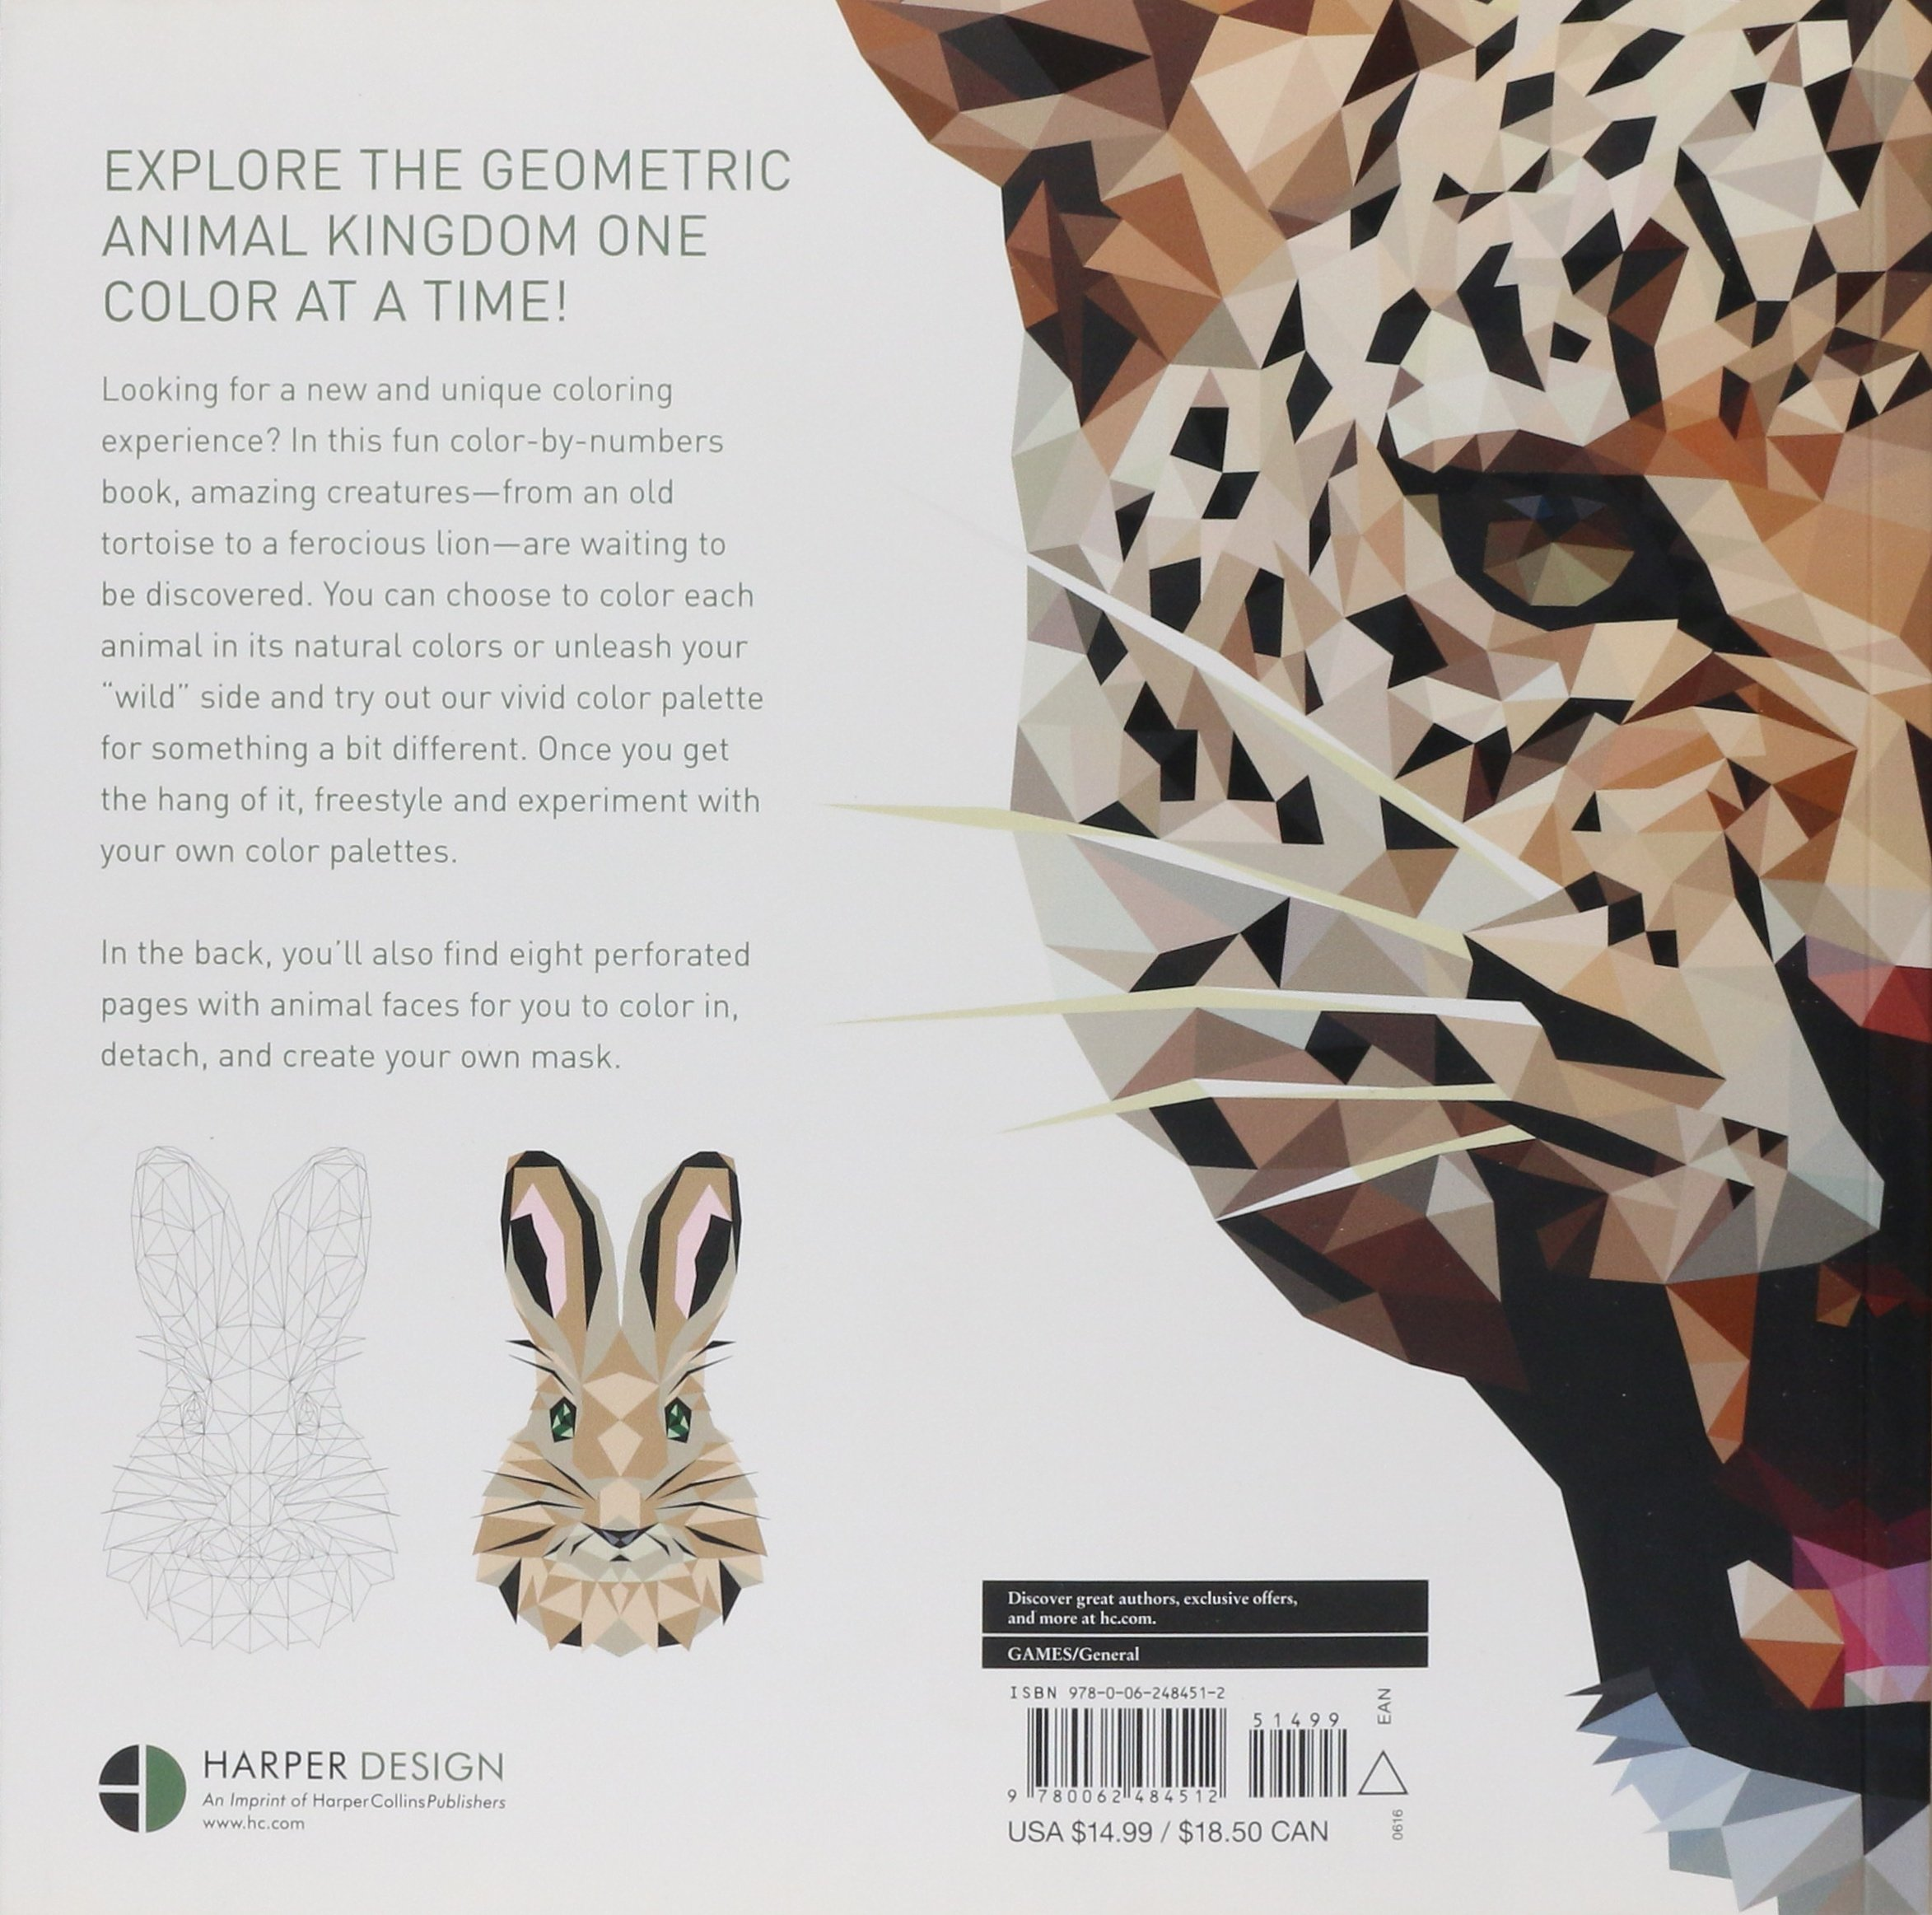 Coloring by numbers for rabbits - Trianimals Color Me Wild 60 Color By Number Geometric Artworks With Bite Hope Little Cetin Can Karaduman 9780062484512 Amazon Com Books